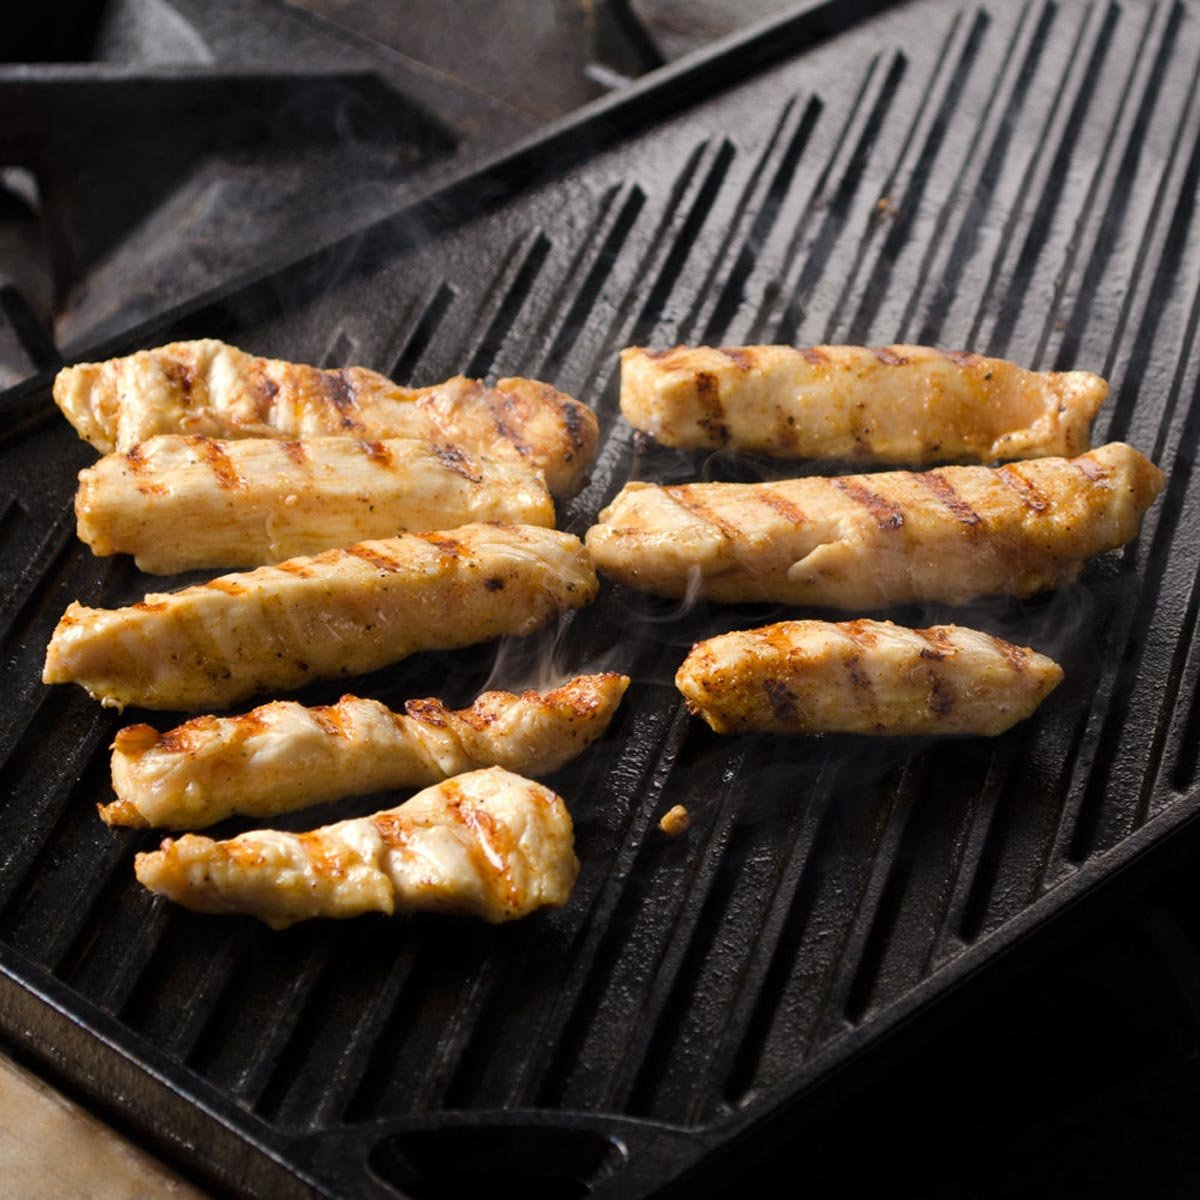 Lodge Reversible Grill and Griddle Combo. Double-Sided Cast Iron Pan with Smooth Side and Ribbed Side. by Lodge (Image #6)